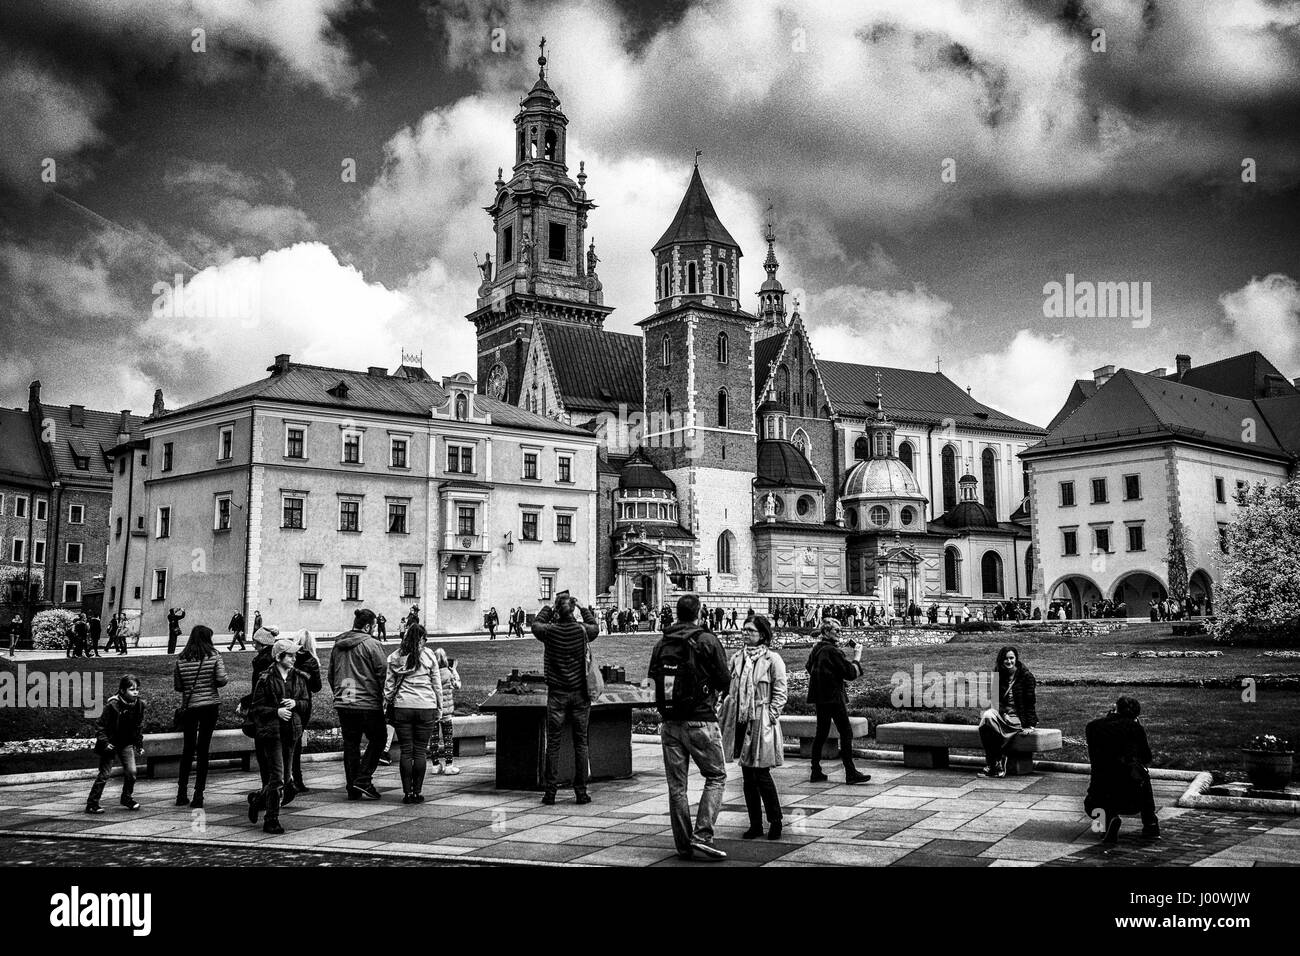 Krakow, Poland. 08th Apr, 2017. The Wawel Cathedral in Krakow, Poland on 08.04.2017 In the cathedral there is Thumb, - Stock Image